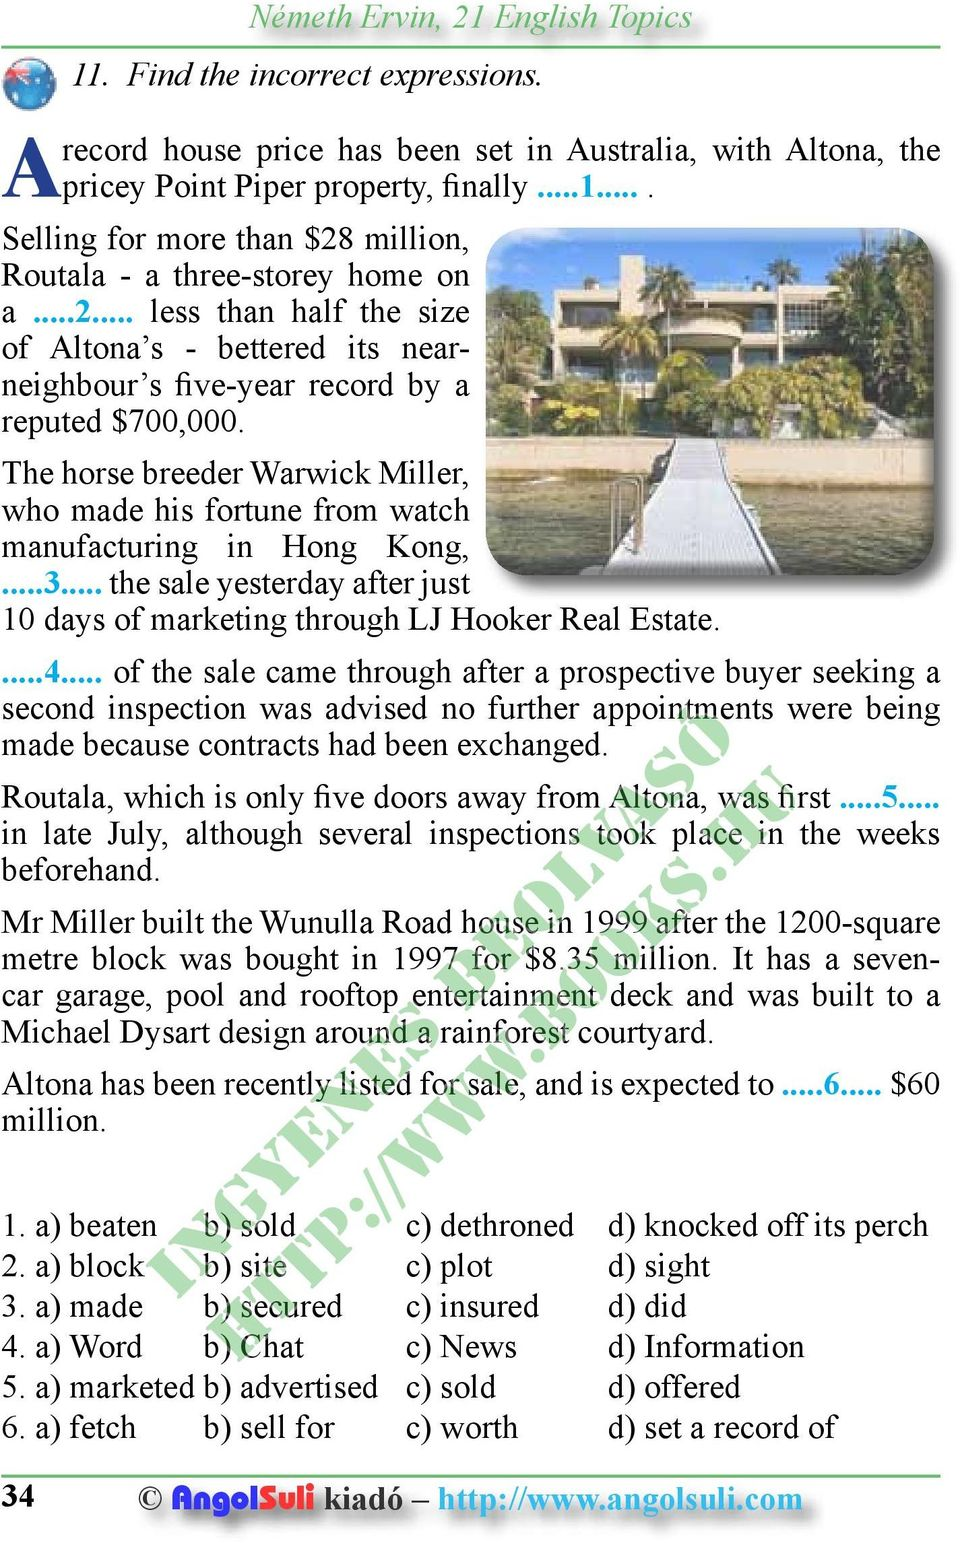 The horse breeder Warwick Miller, who made his fortune from watch manufacturing in Hong Kong,...3... the sale yesterday after just 10 days of marketing through LJ Hooker Real Estate....4.